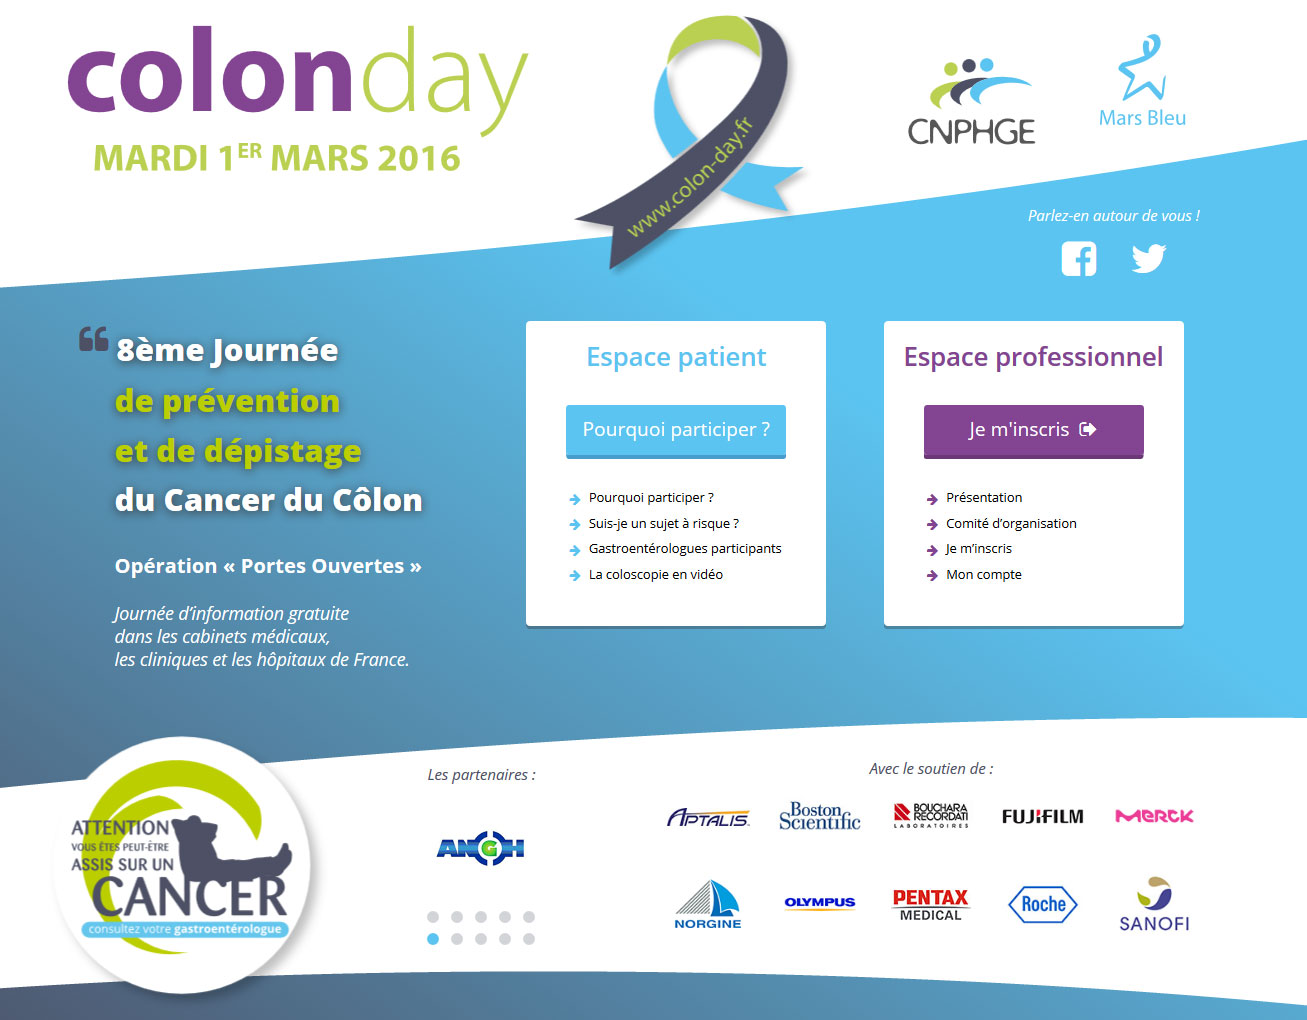 Colonday